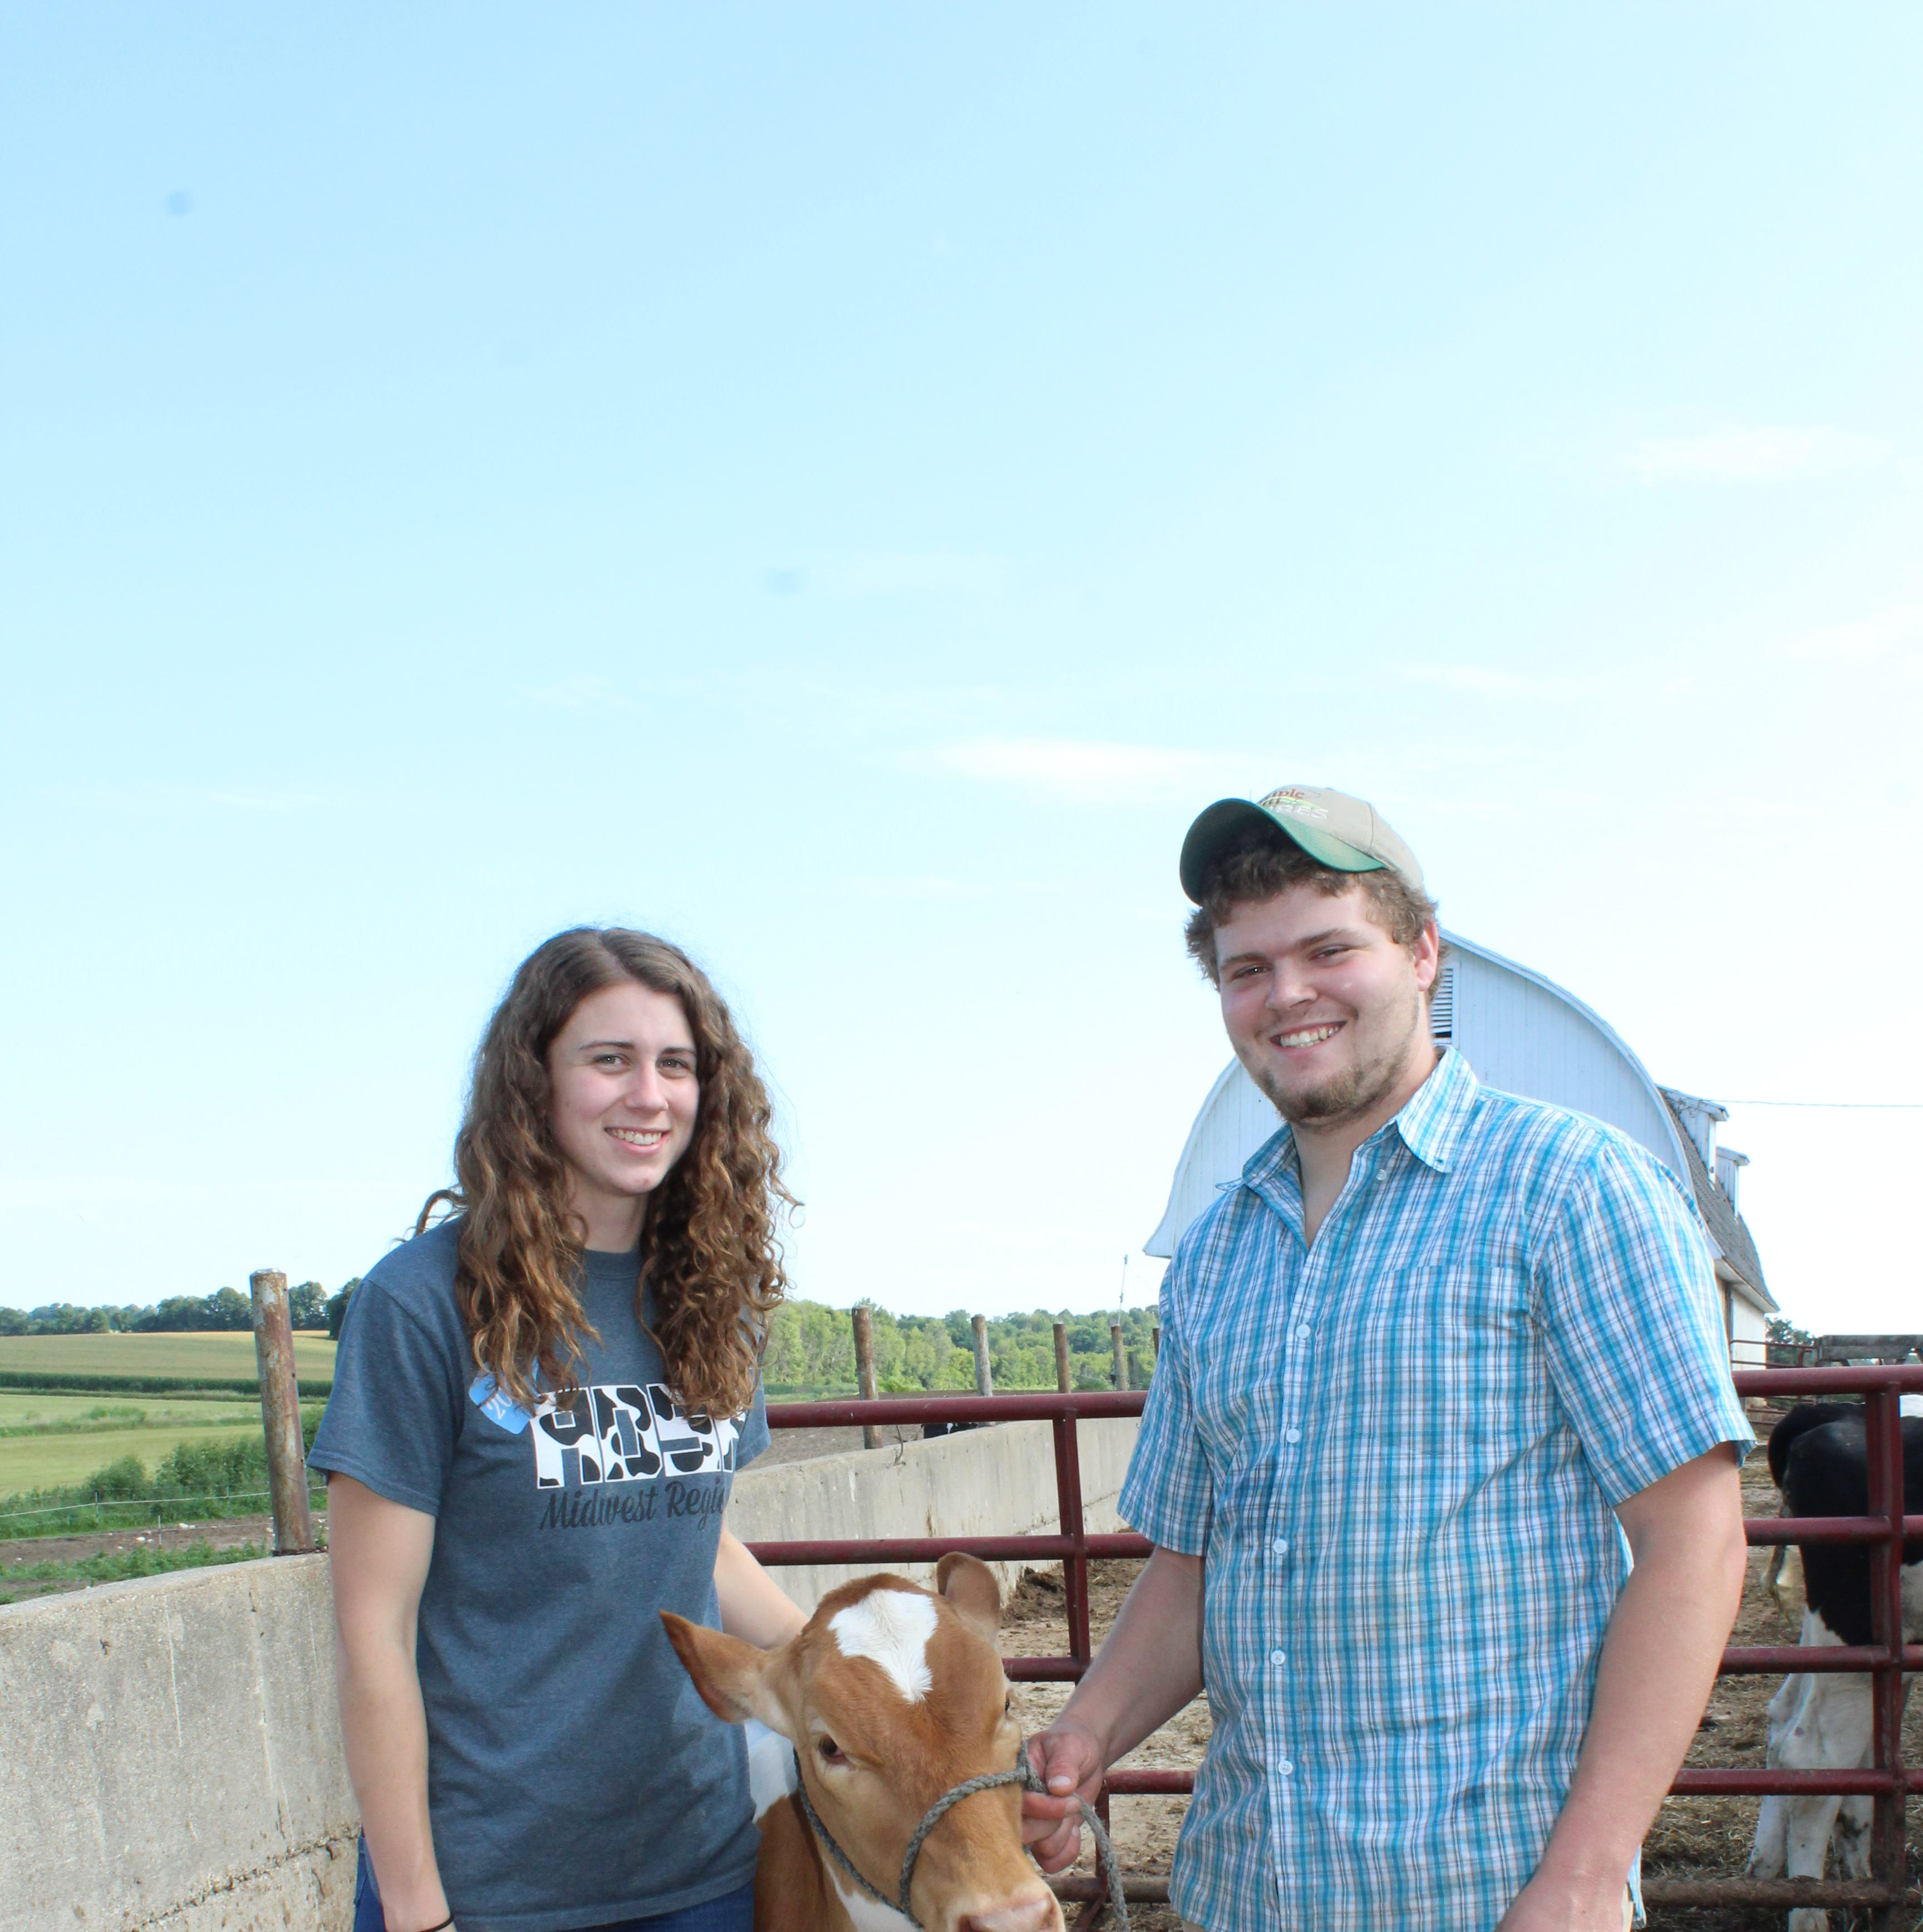 Young farmer Evan Schrauth eager to meet challenges in dairy industry